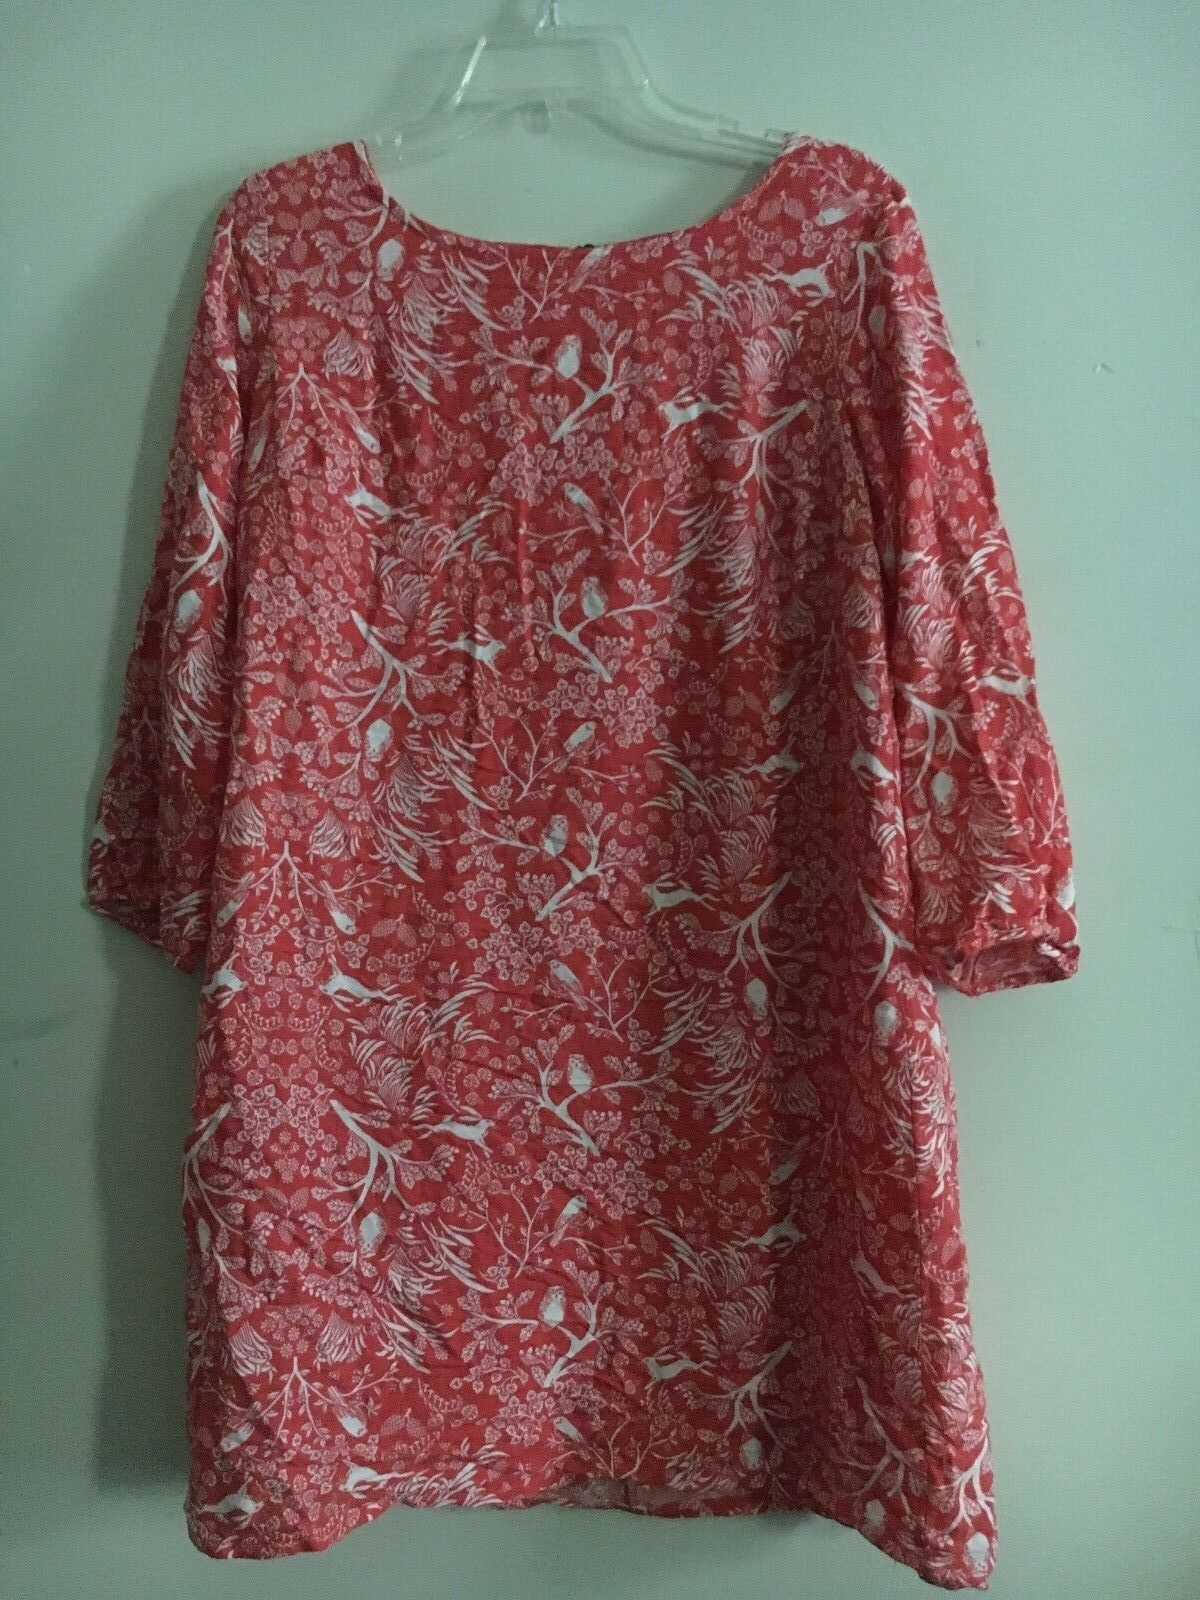 Old Navy Women Red orange and White Floral Patterned Shirt Dress Size M